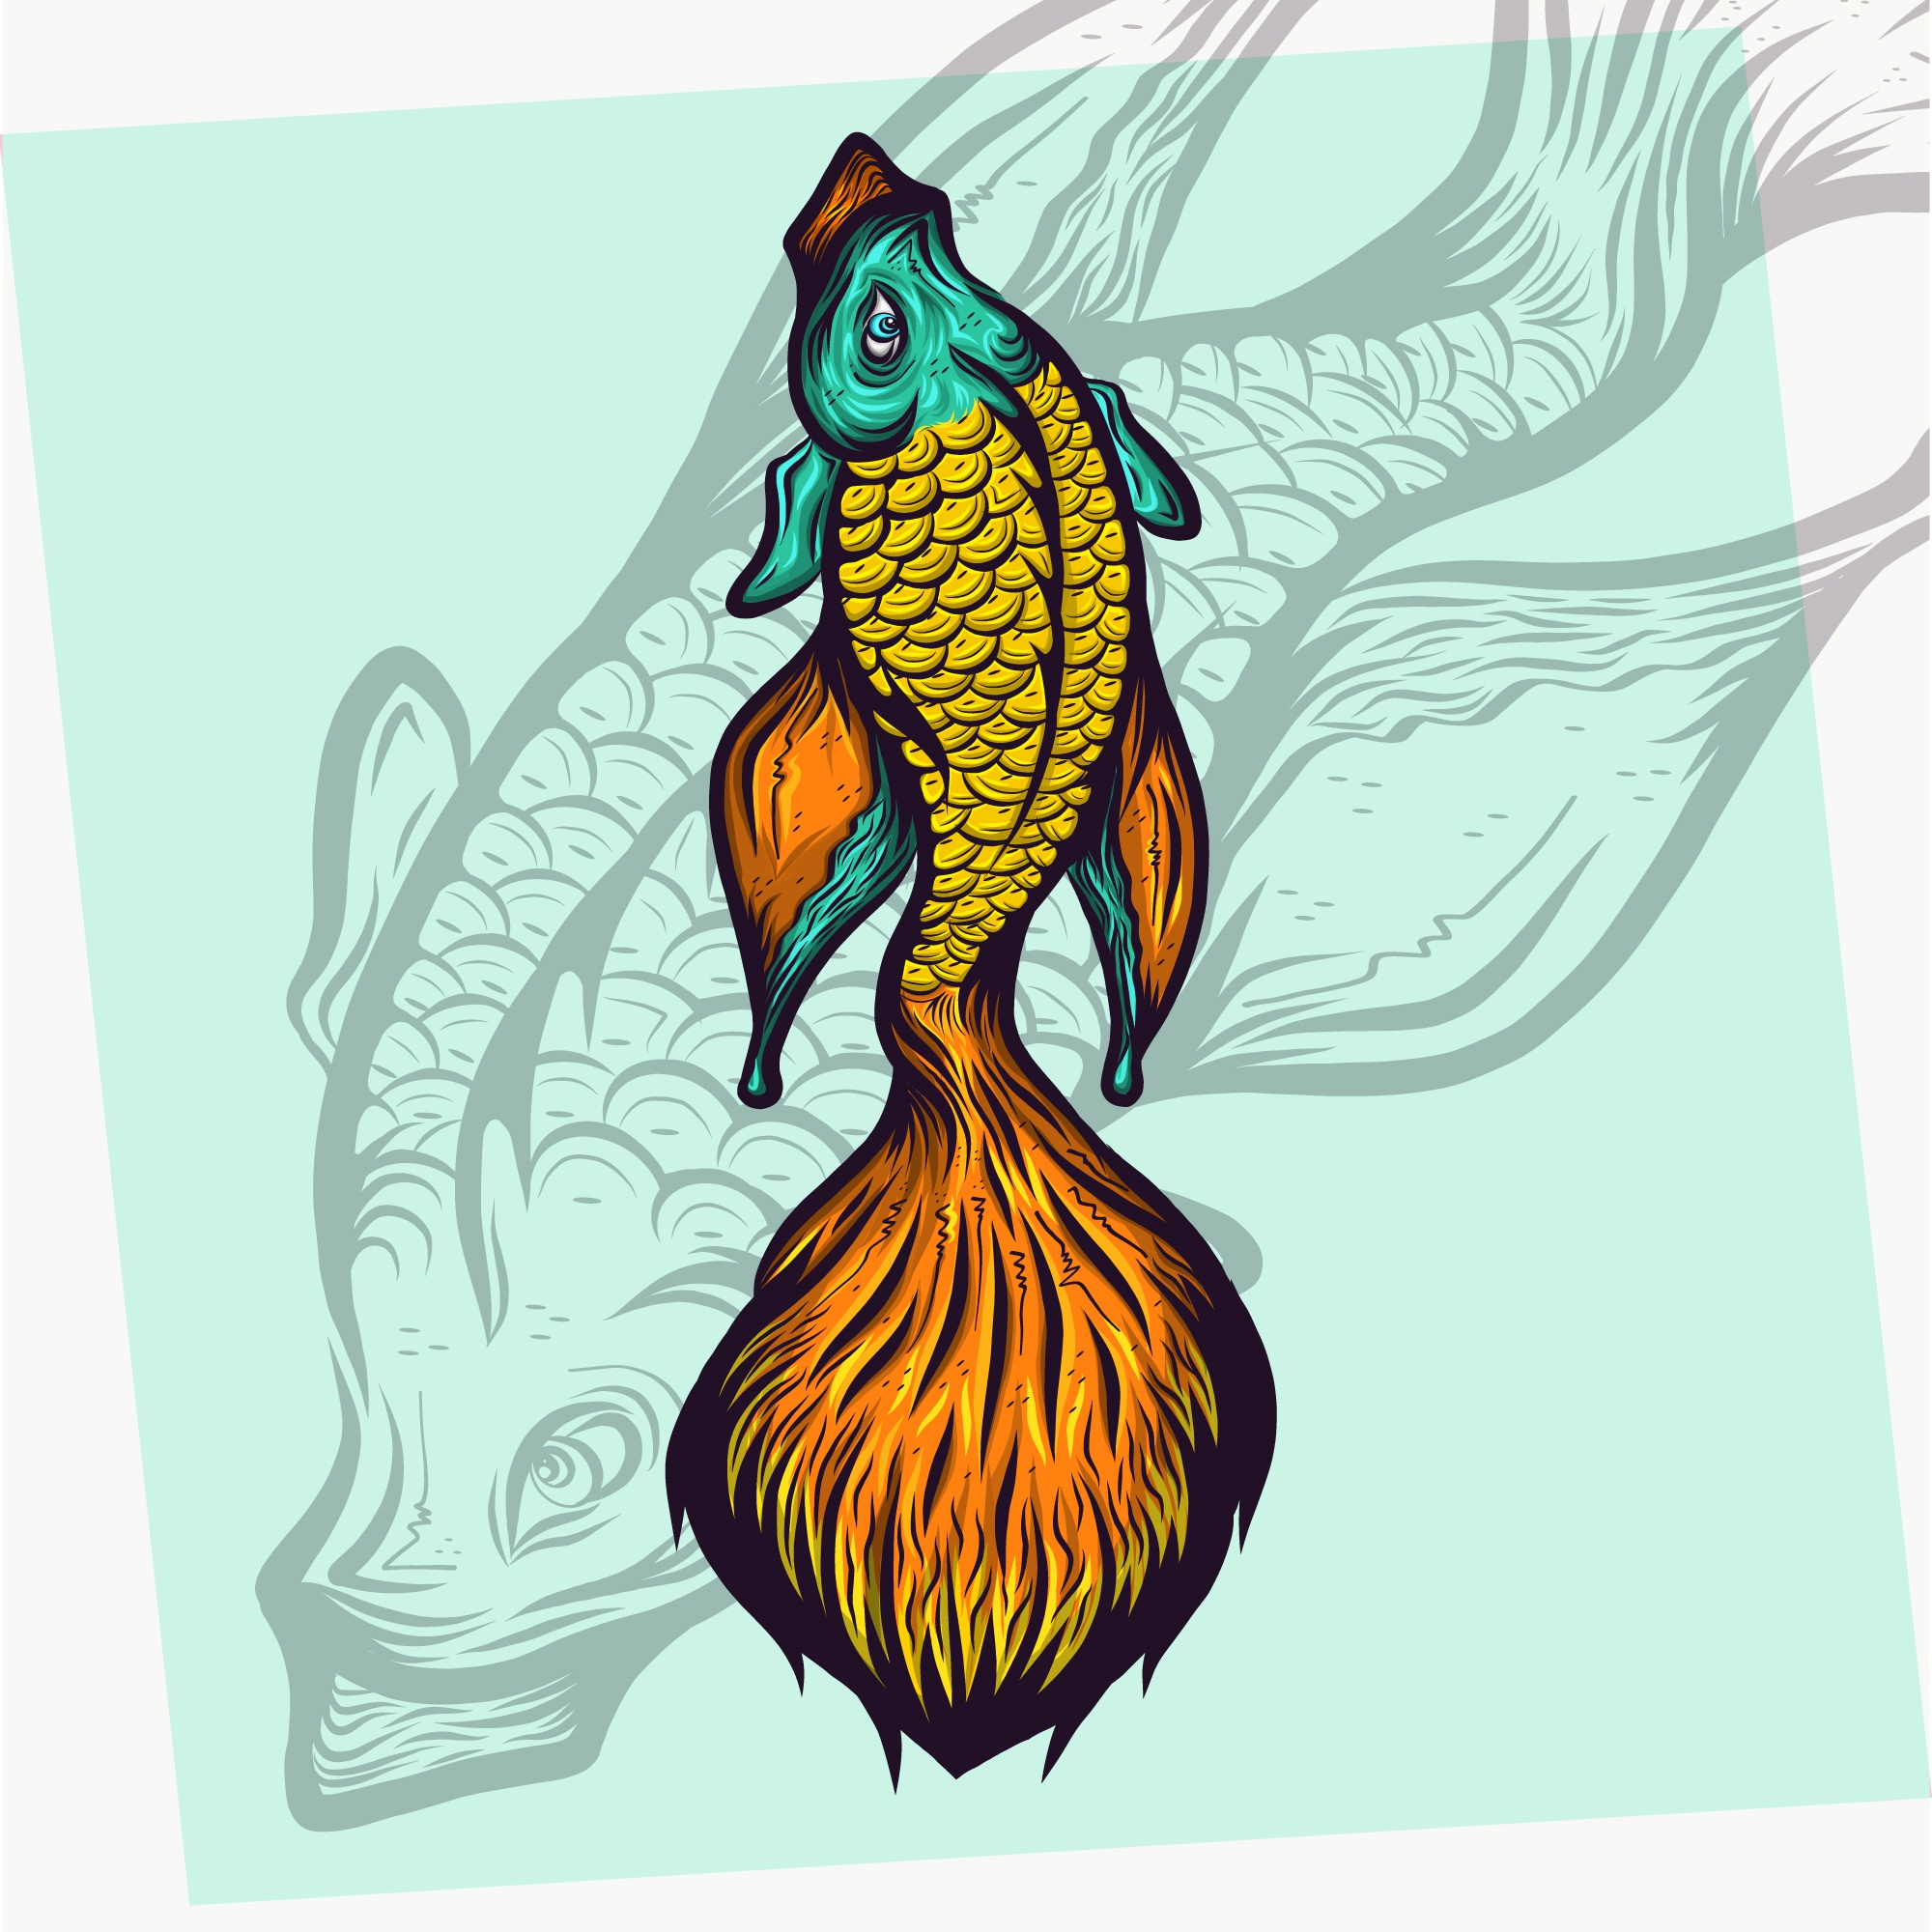 Fish illustration